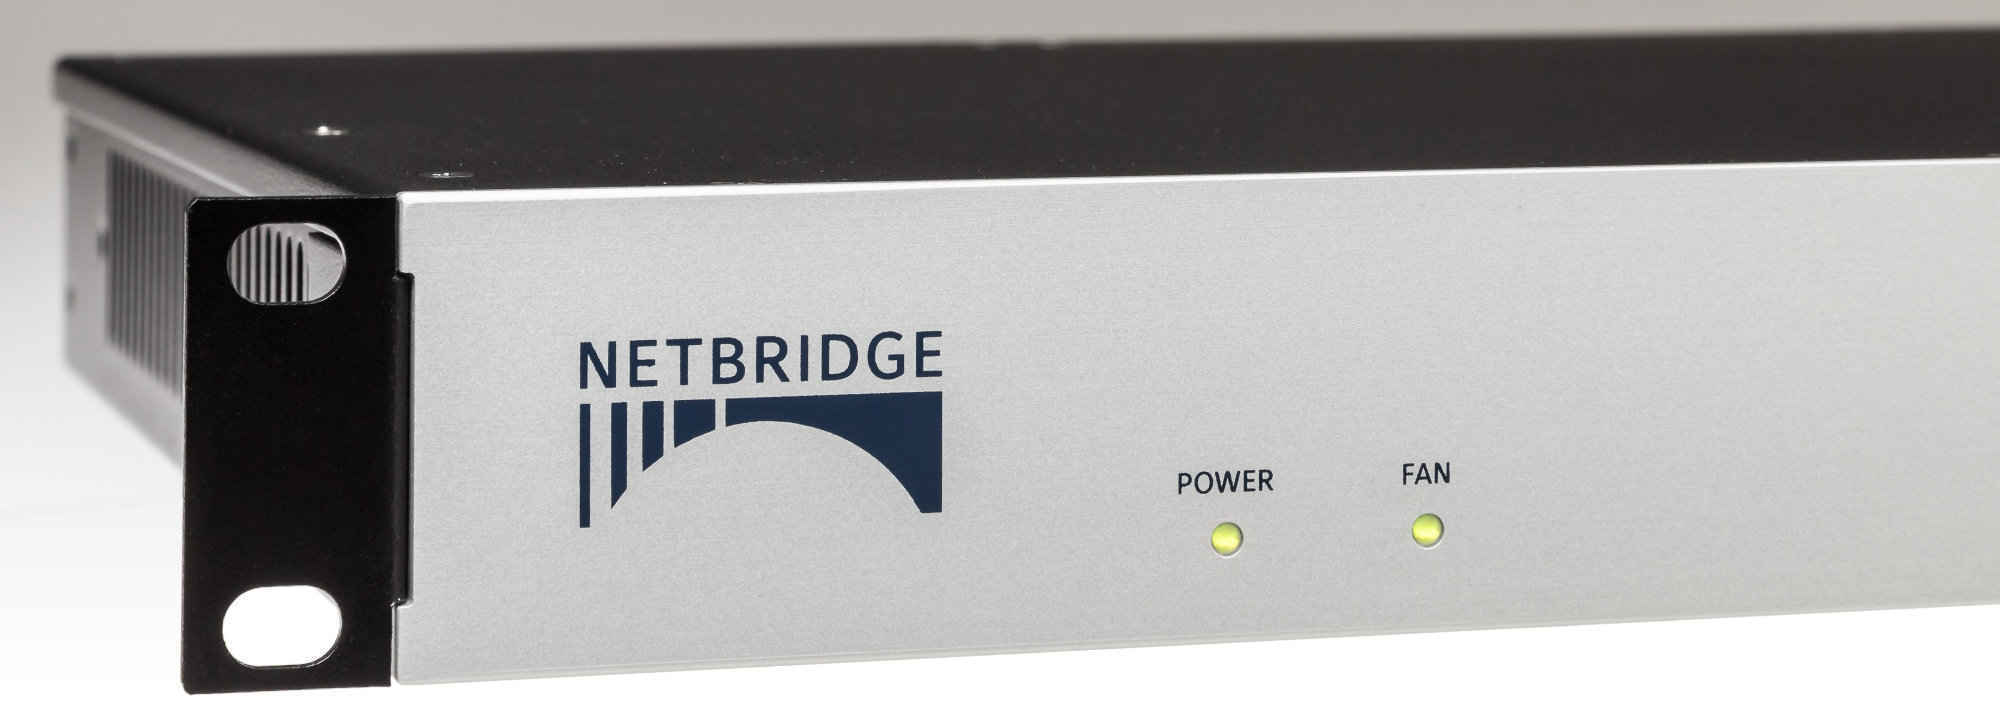 Netbridge - Front View